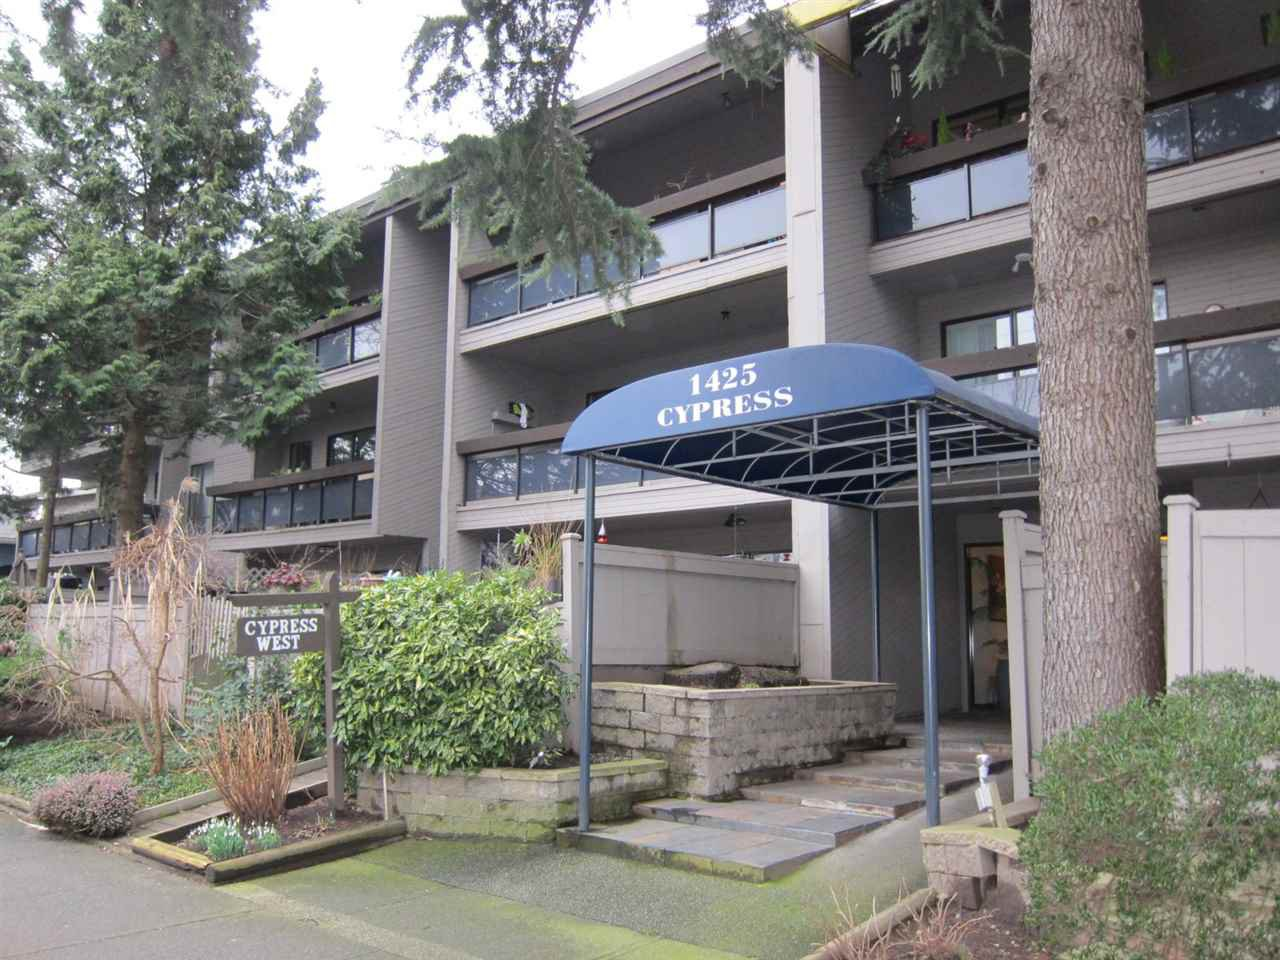 "Main Photo: 208 1425 CYPRESS Street in Vancouver: Kitsilano Condo for sale in ""CYPRESS WEST"" (Vancouver West)  : MLS®# R2039250"